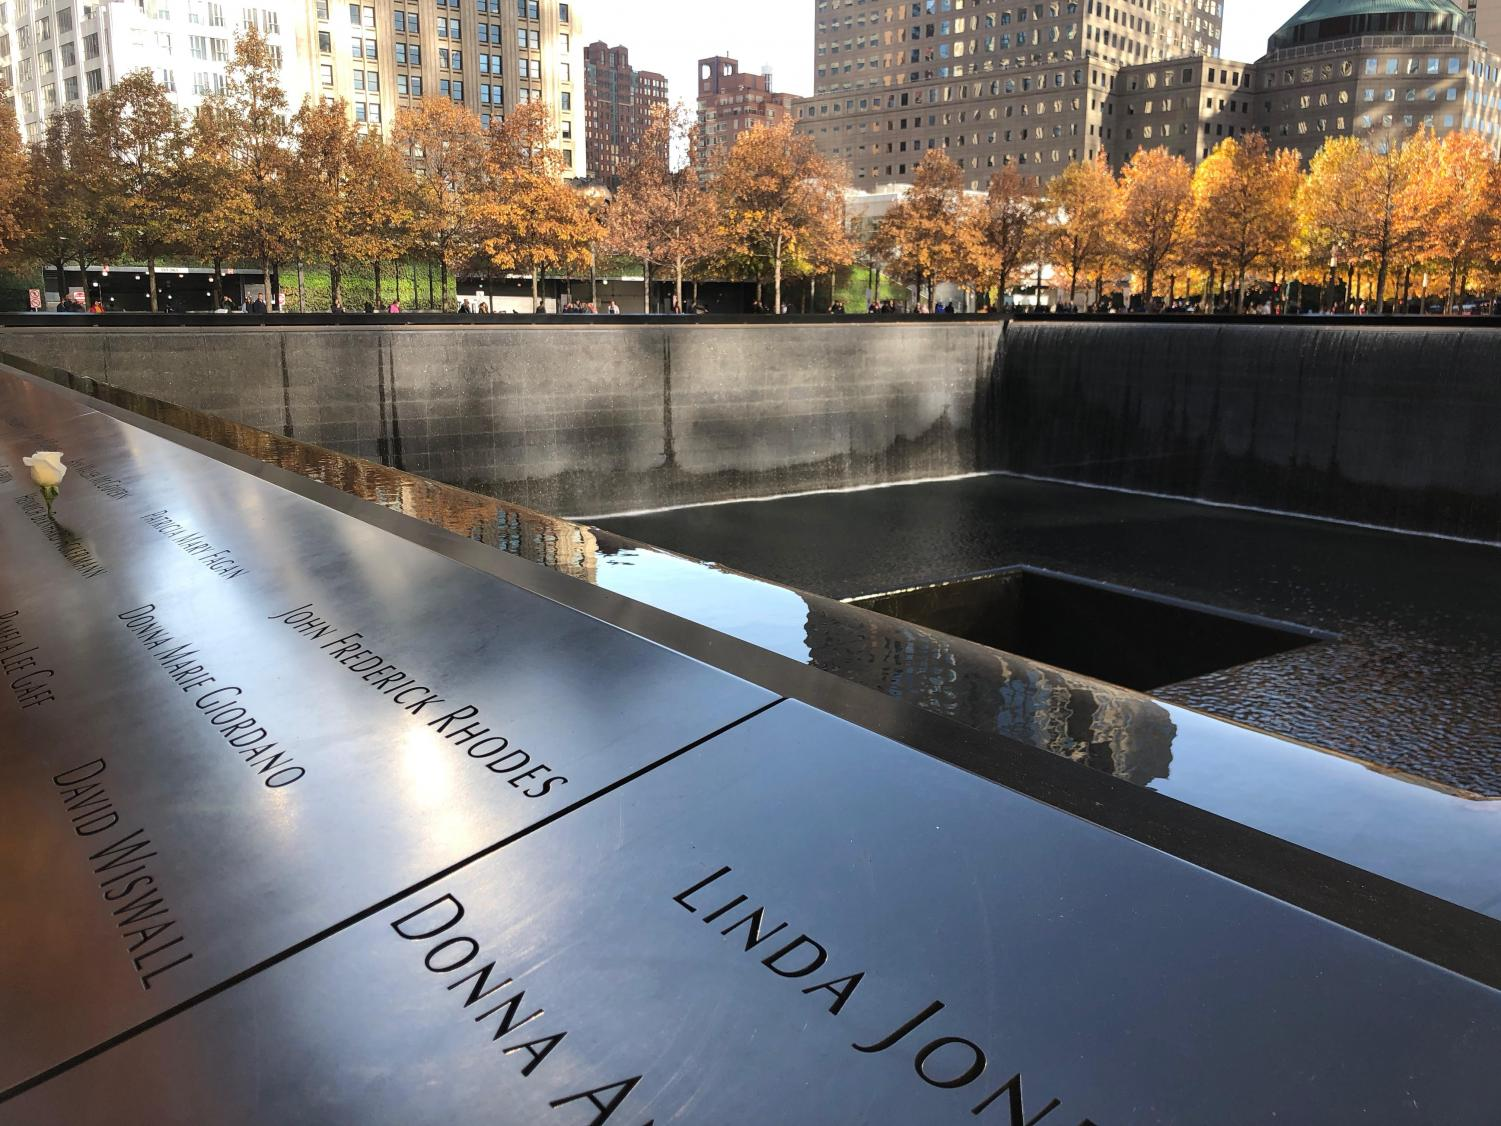 An image taken above the memorial pools outside the 9/11 memorial museum.